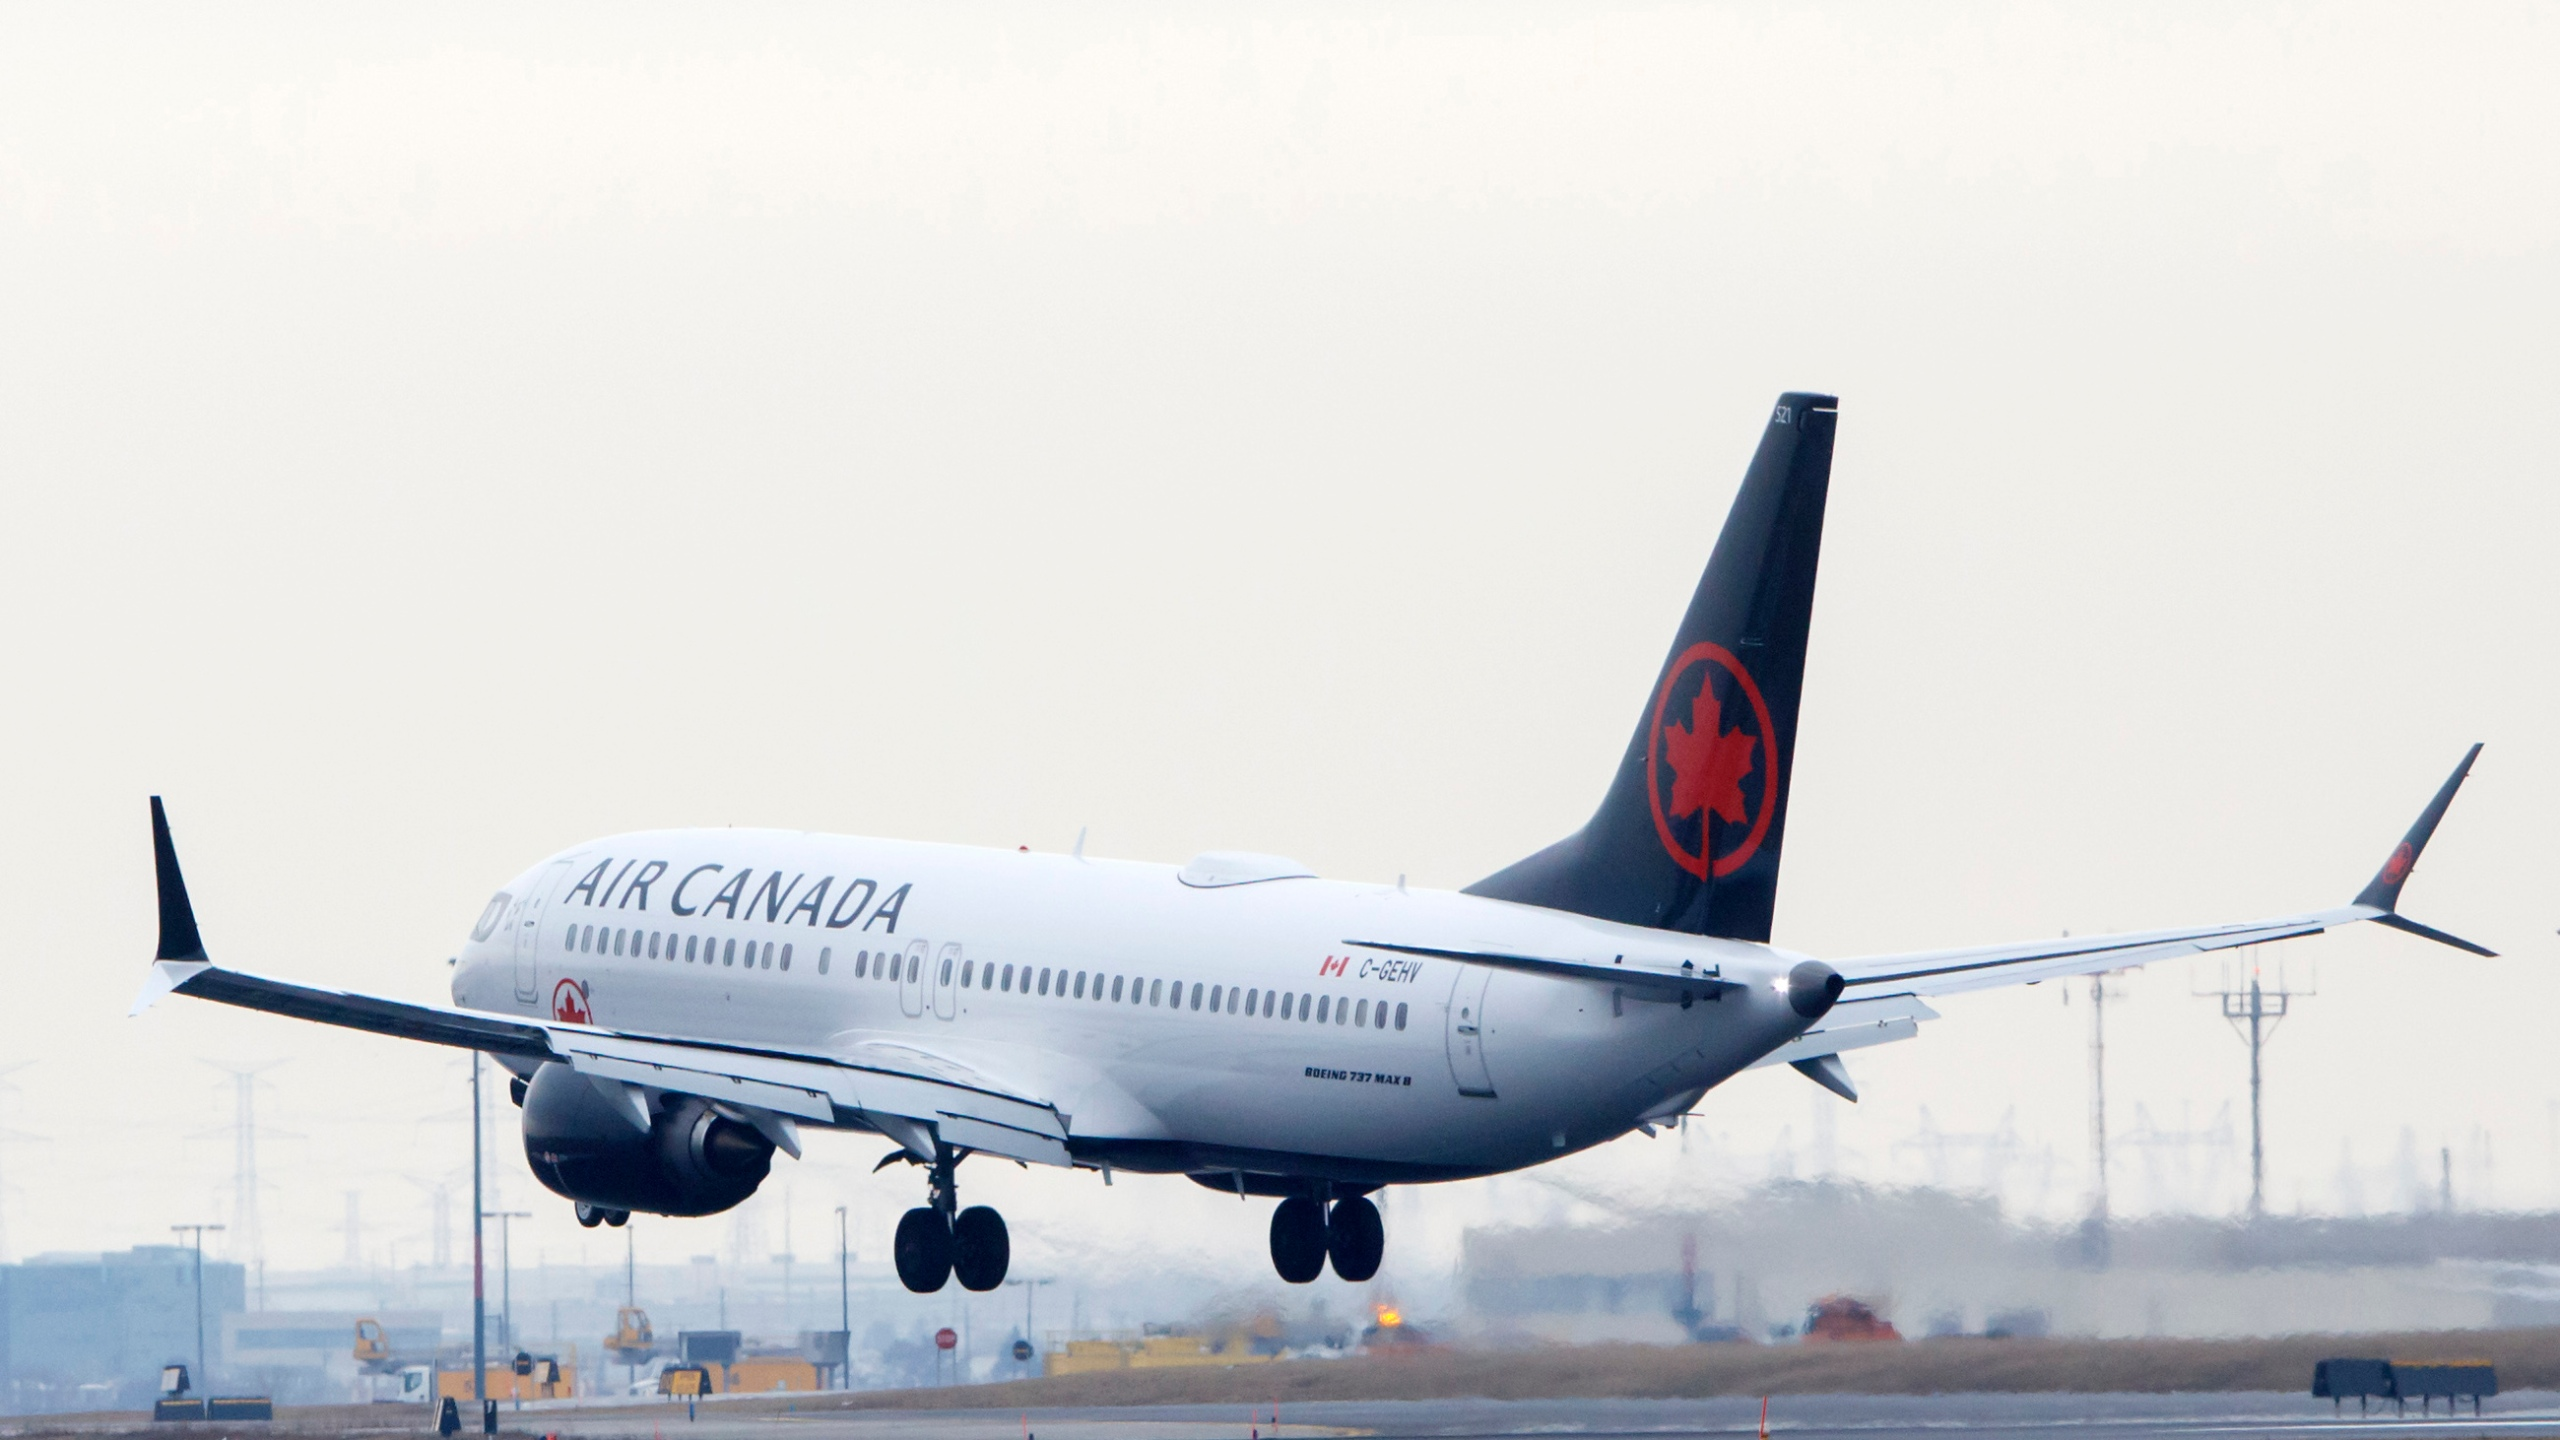 An Air Canada Boeing 737 MAX 8 jet approaches the Toronto Pearson International Airport for a landing on March 13, 2019, in Toronto, Canada. (Credit: Cole Burston/Getty Images)